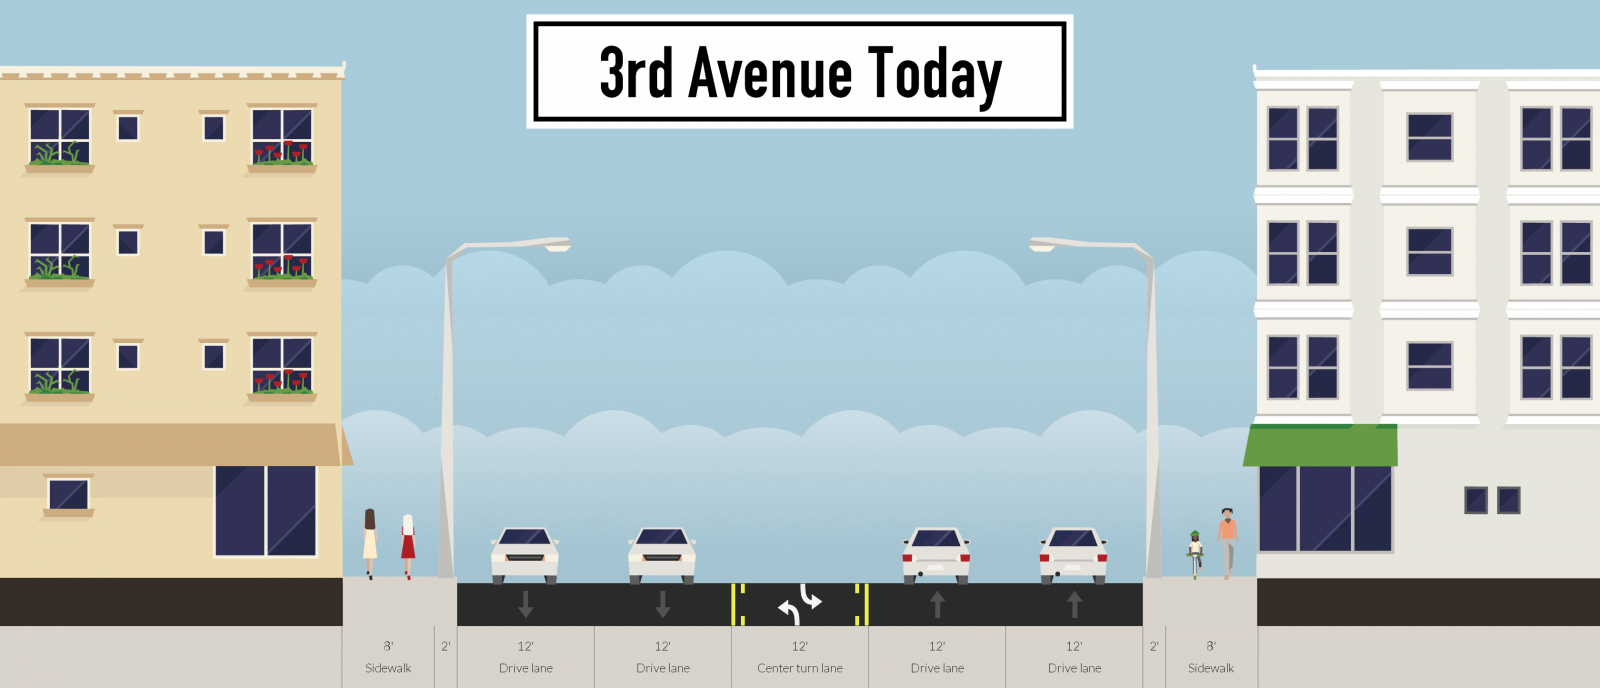 3rd-avenue-today_Streetmix.png